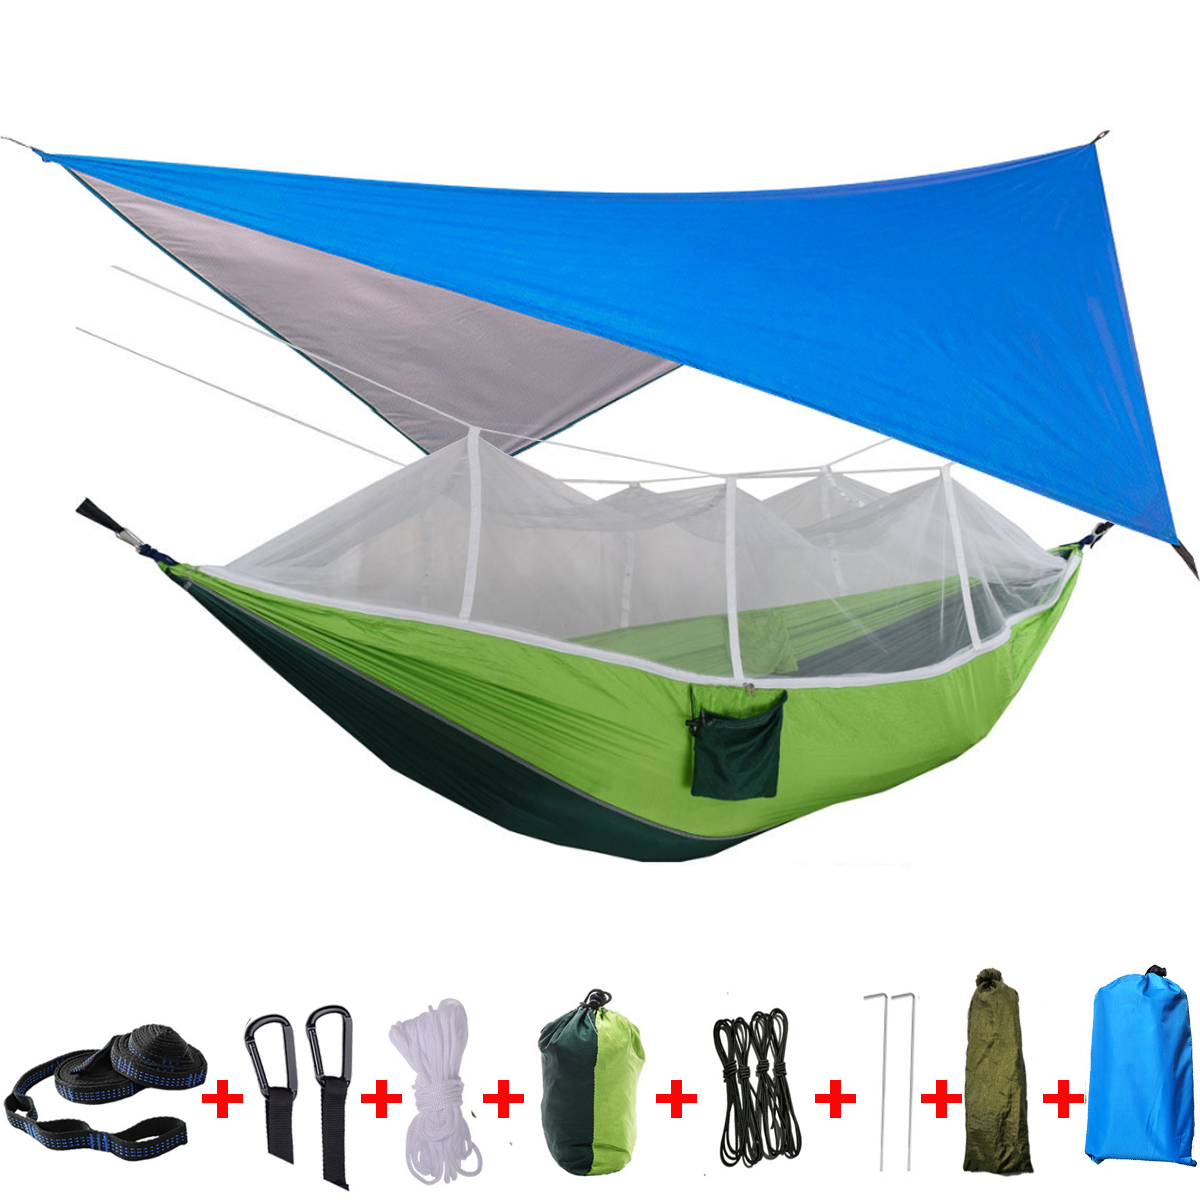 Details about  /Double Person Travel Portable Camping Tent Hanging Hammock Bed With Mosquito Net